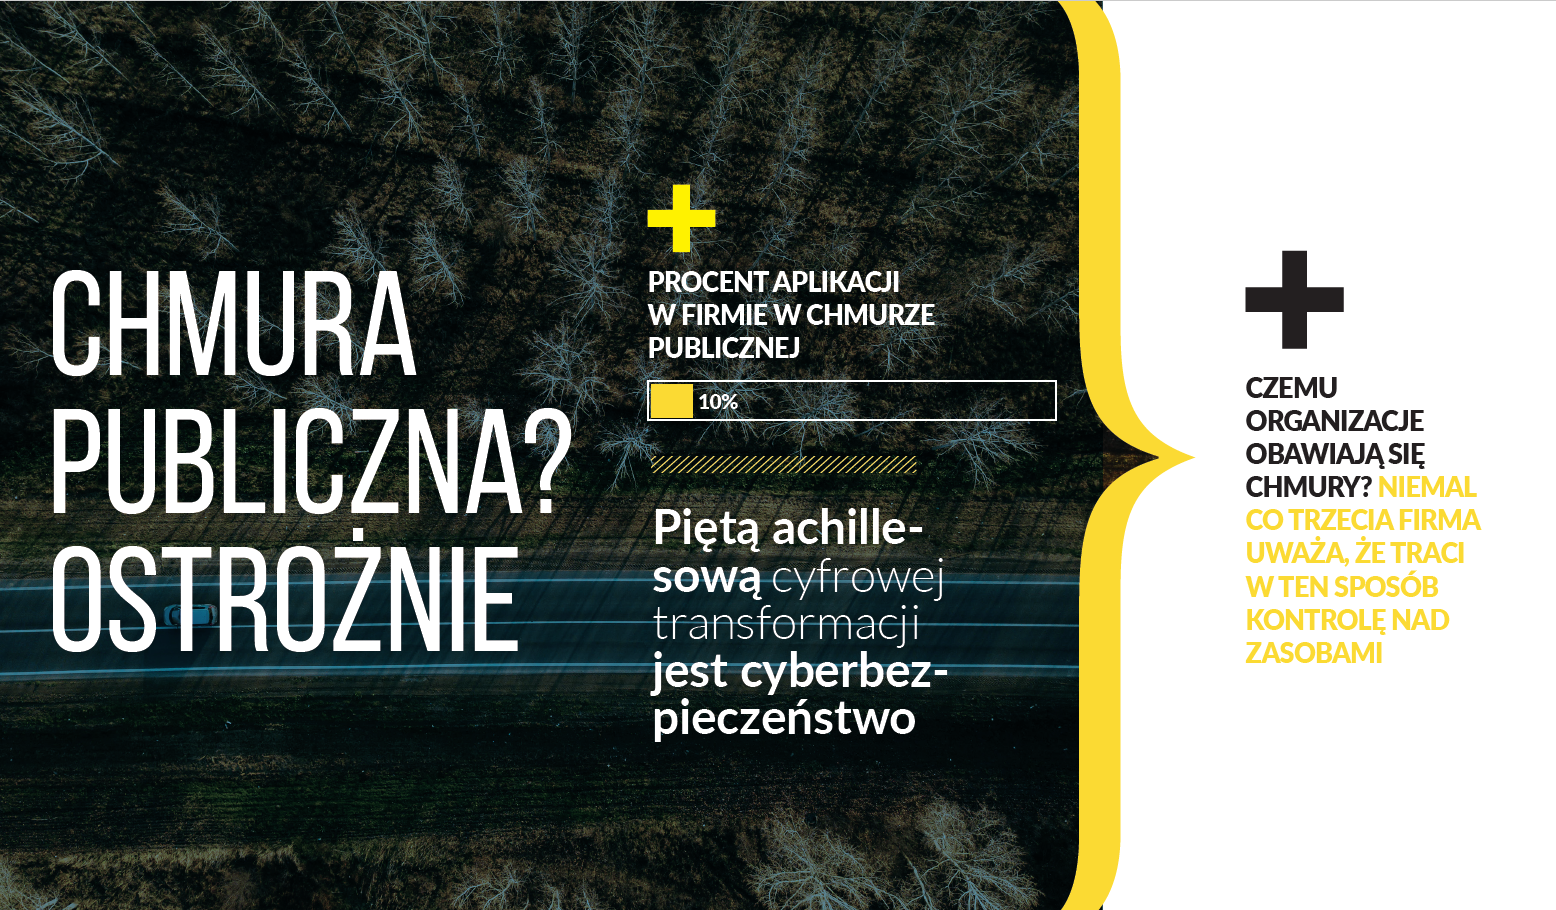 Digital Excellence & CIONET Poland - Security Excellence Report - chmura publiczna ostroznie Security Excellence 2019.